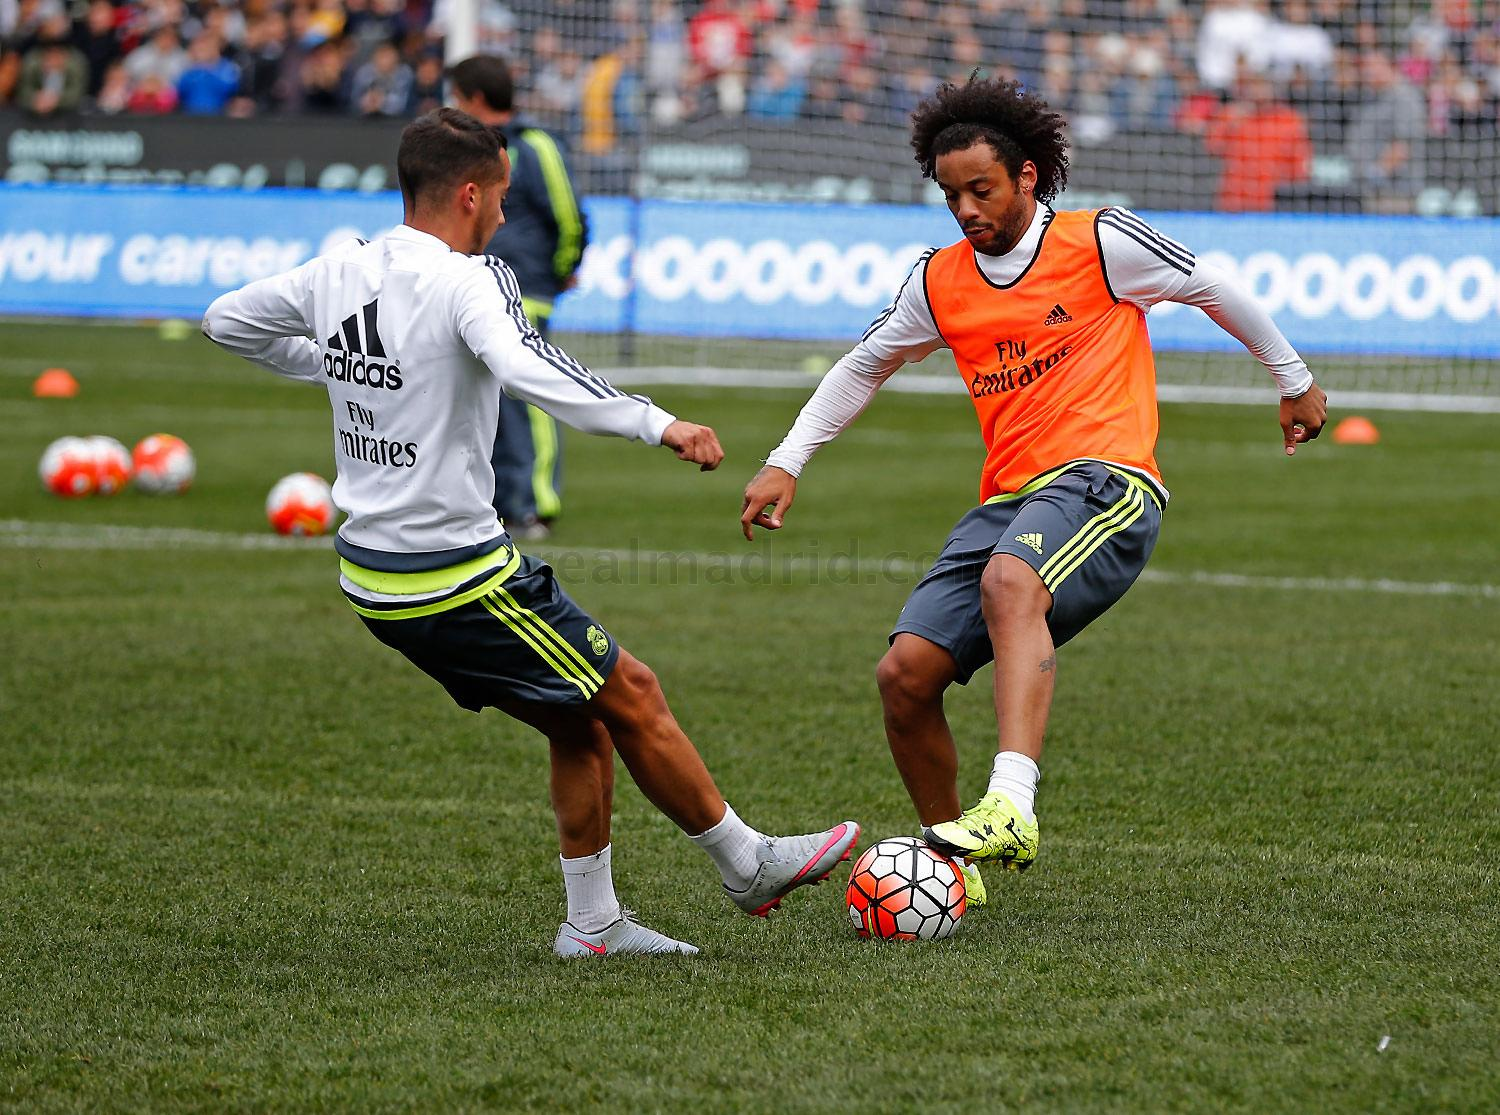 Real Madrid - Entrenamiento del Real Madrid - 17-07-2015